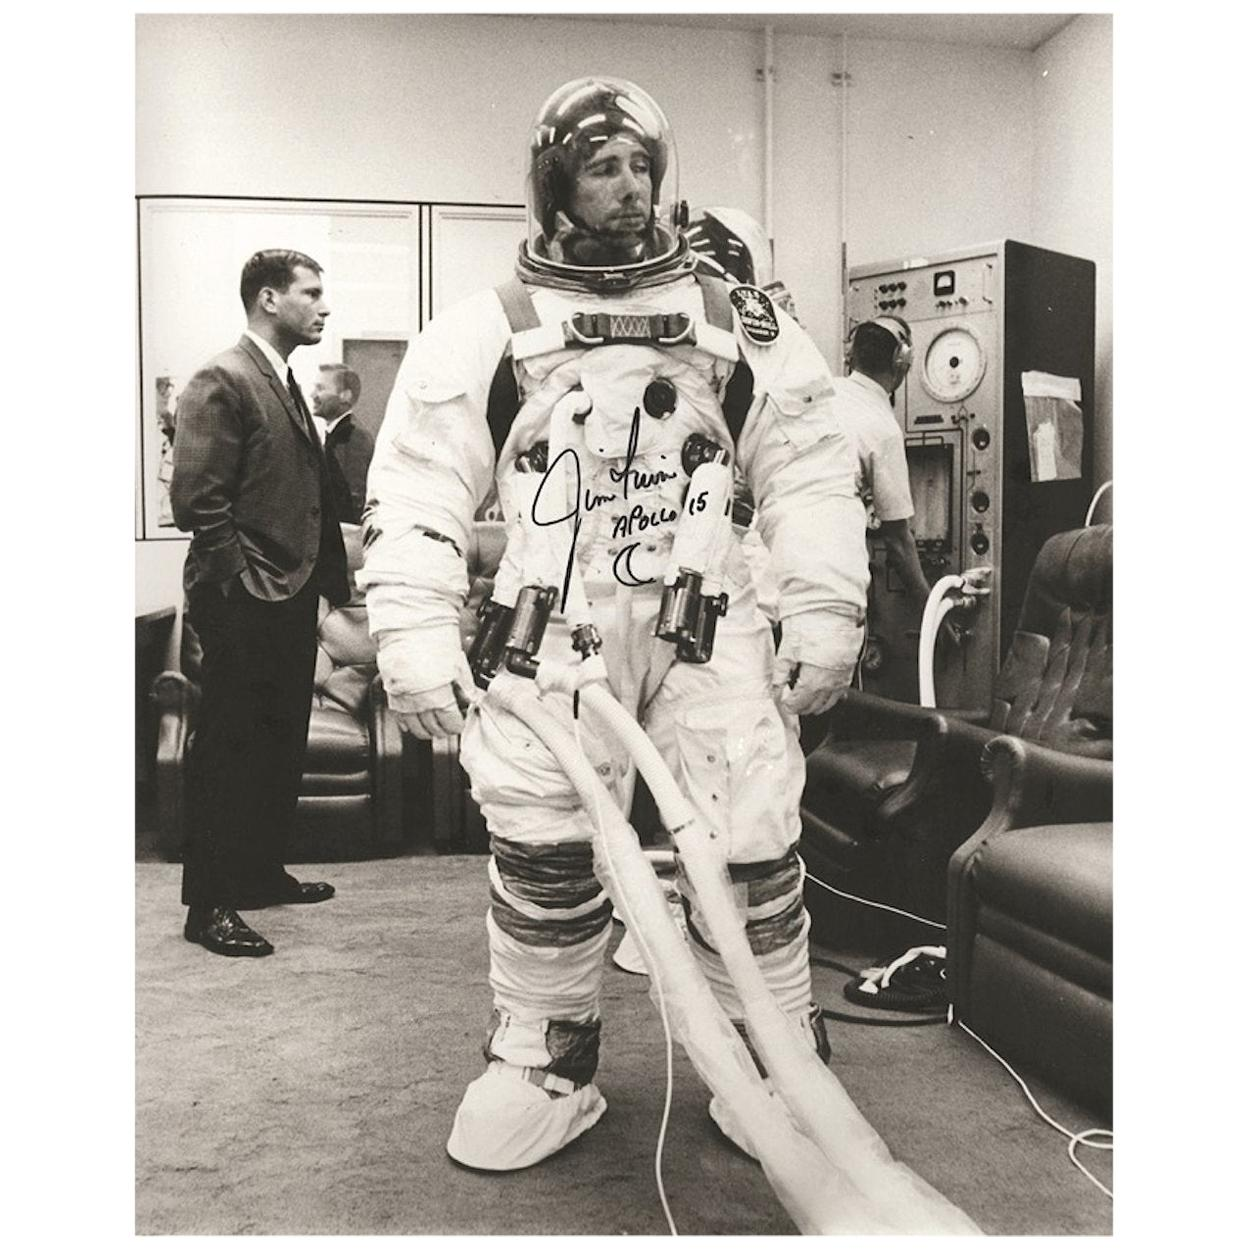 Jim Irwin Apollo 15 Signed 1971 Photograph Black and White